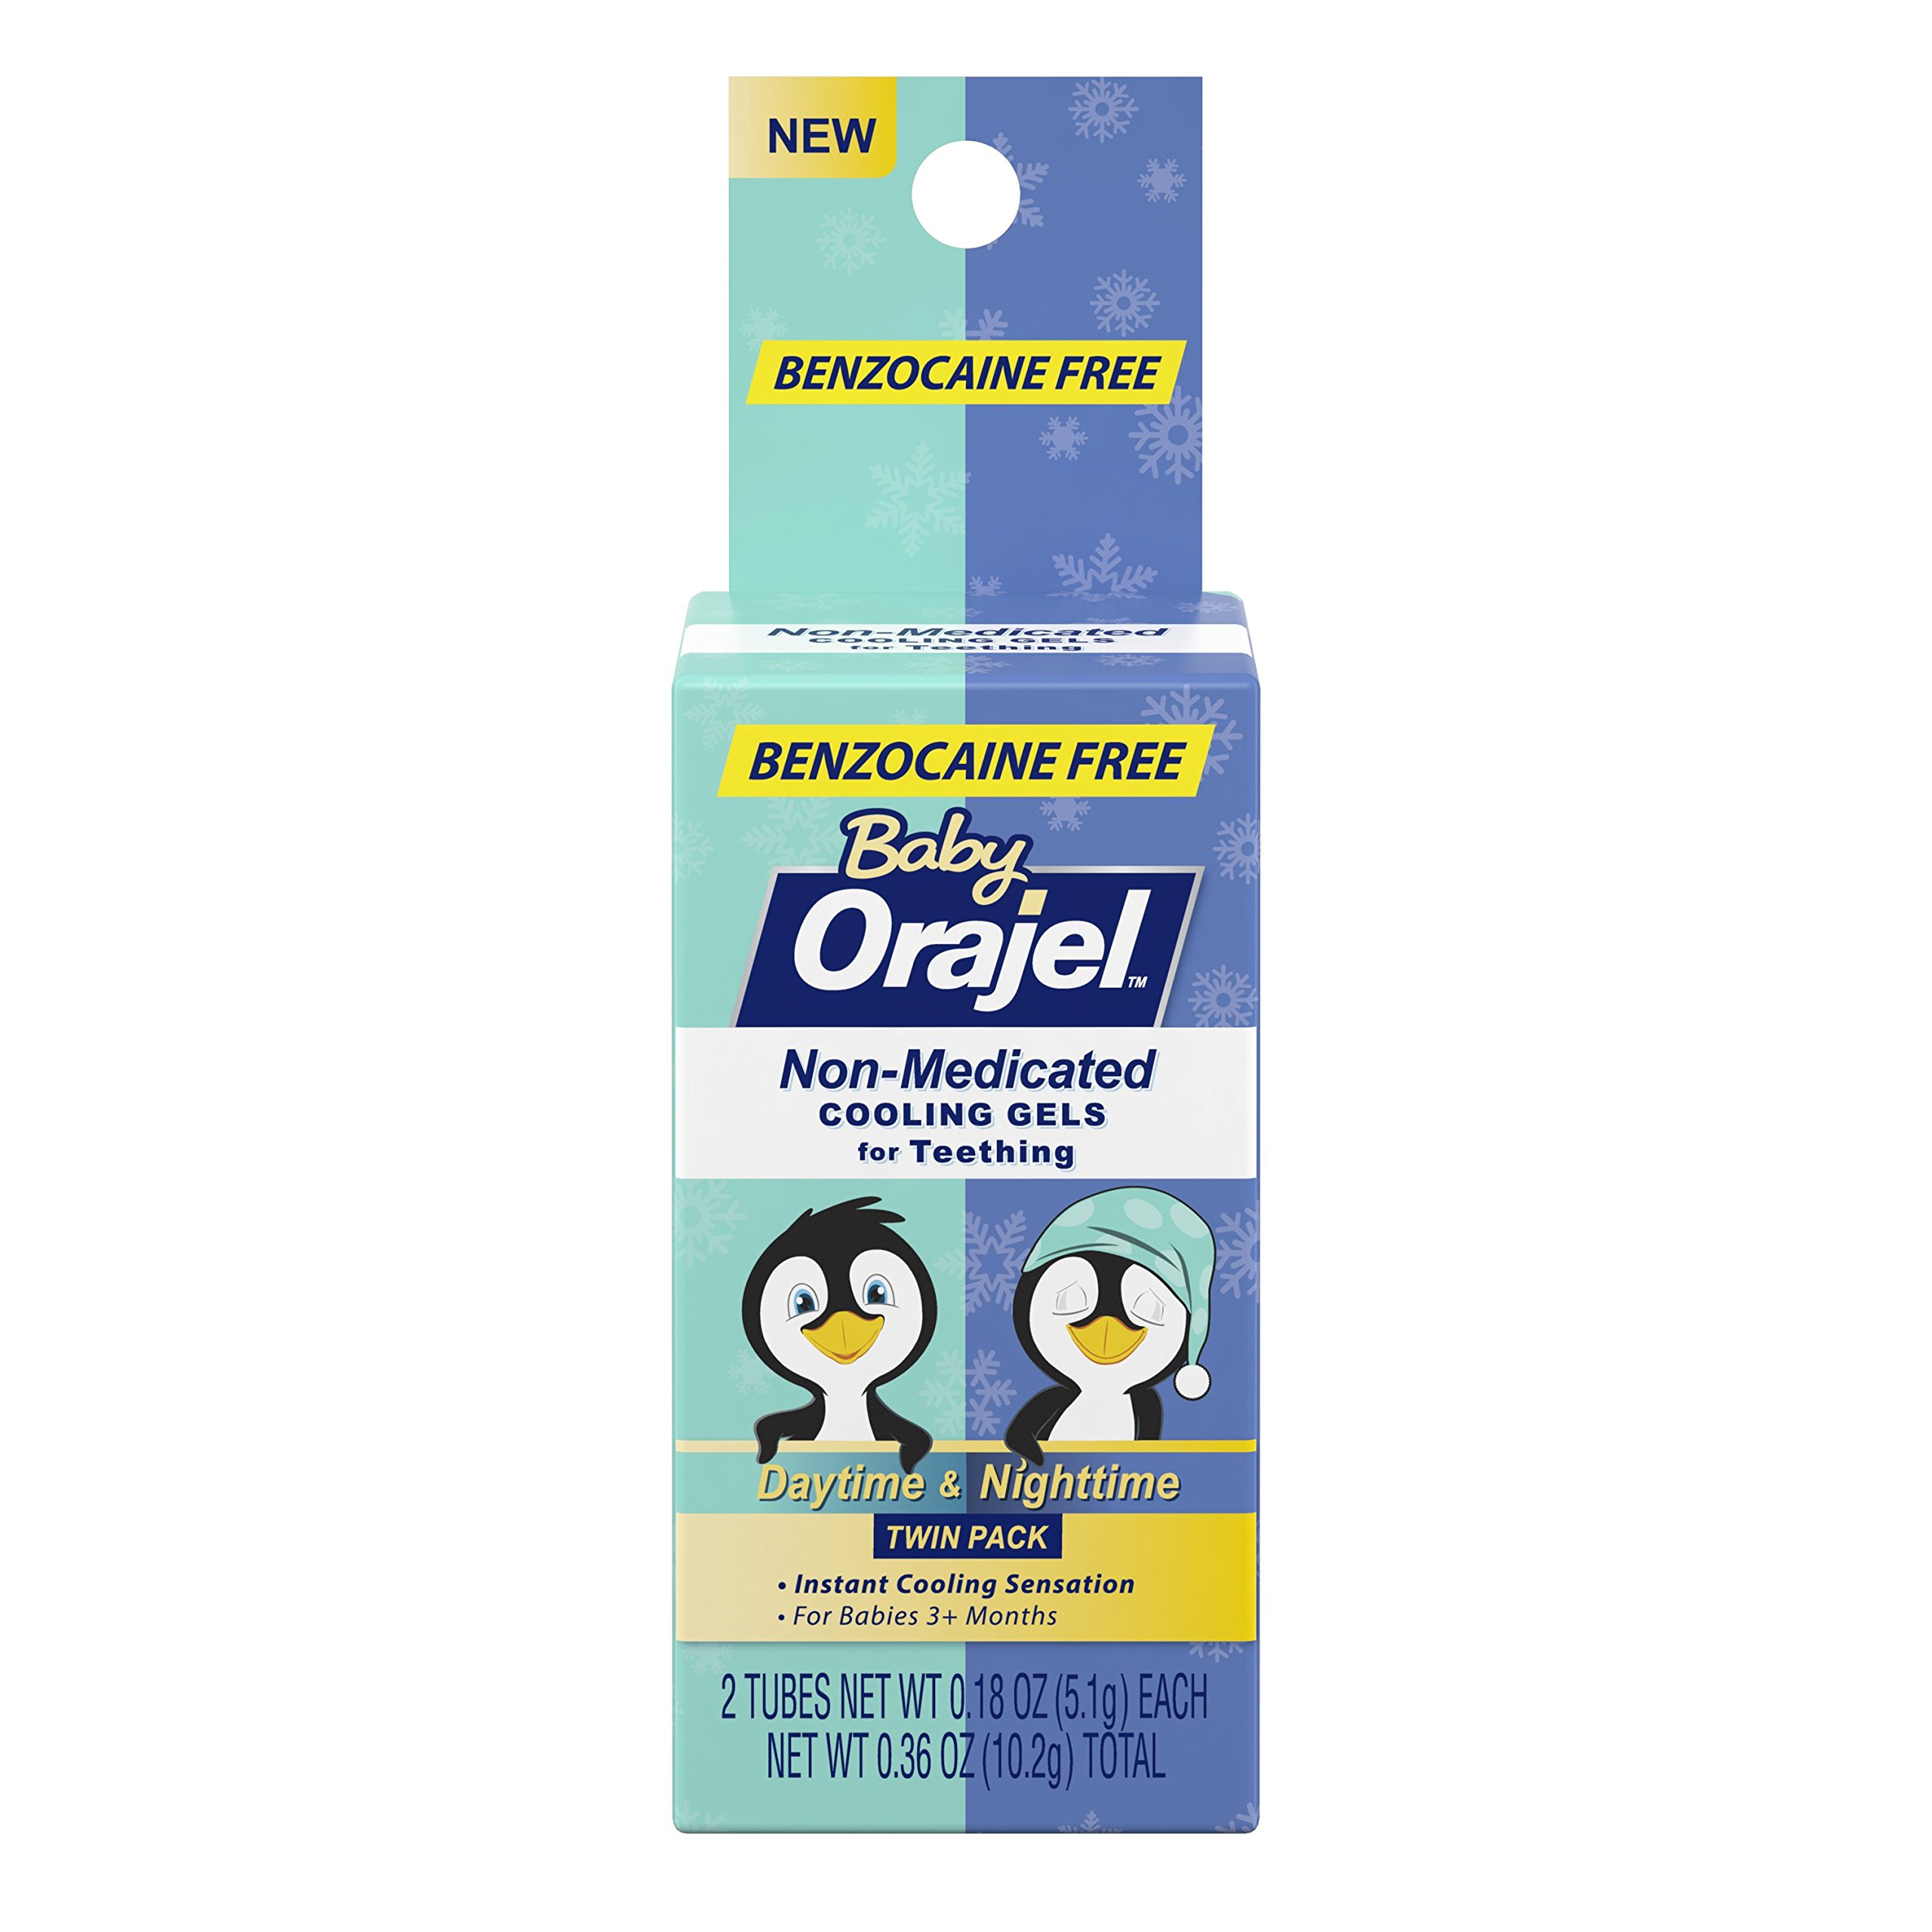 Orajel Baby Daytime and Nighttime Non-Medicated Cooling Gels for Teething